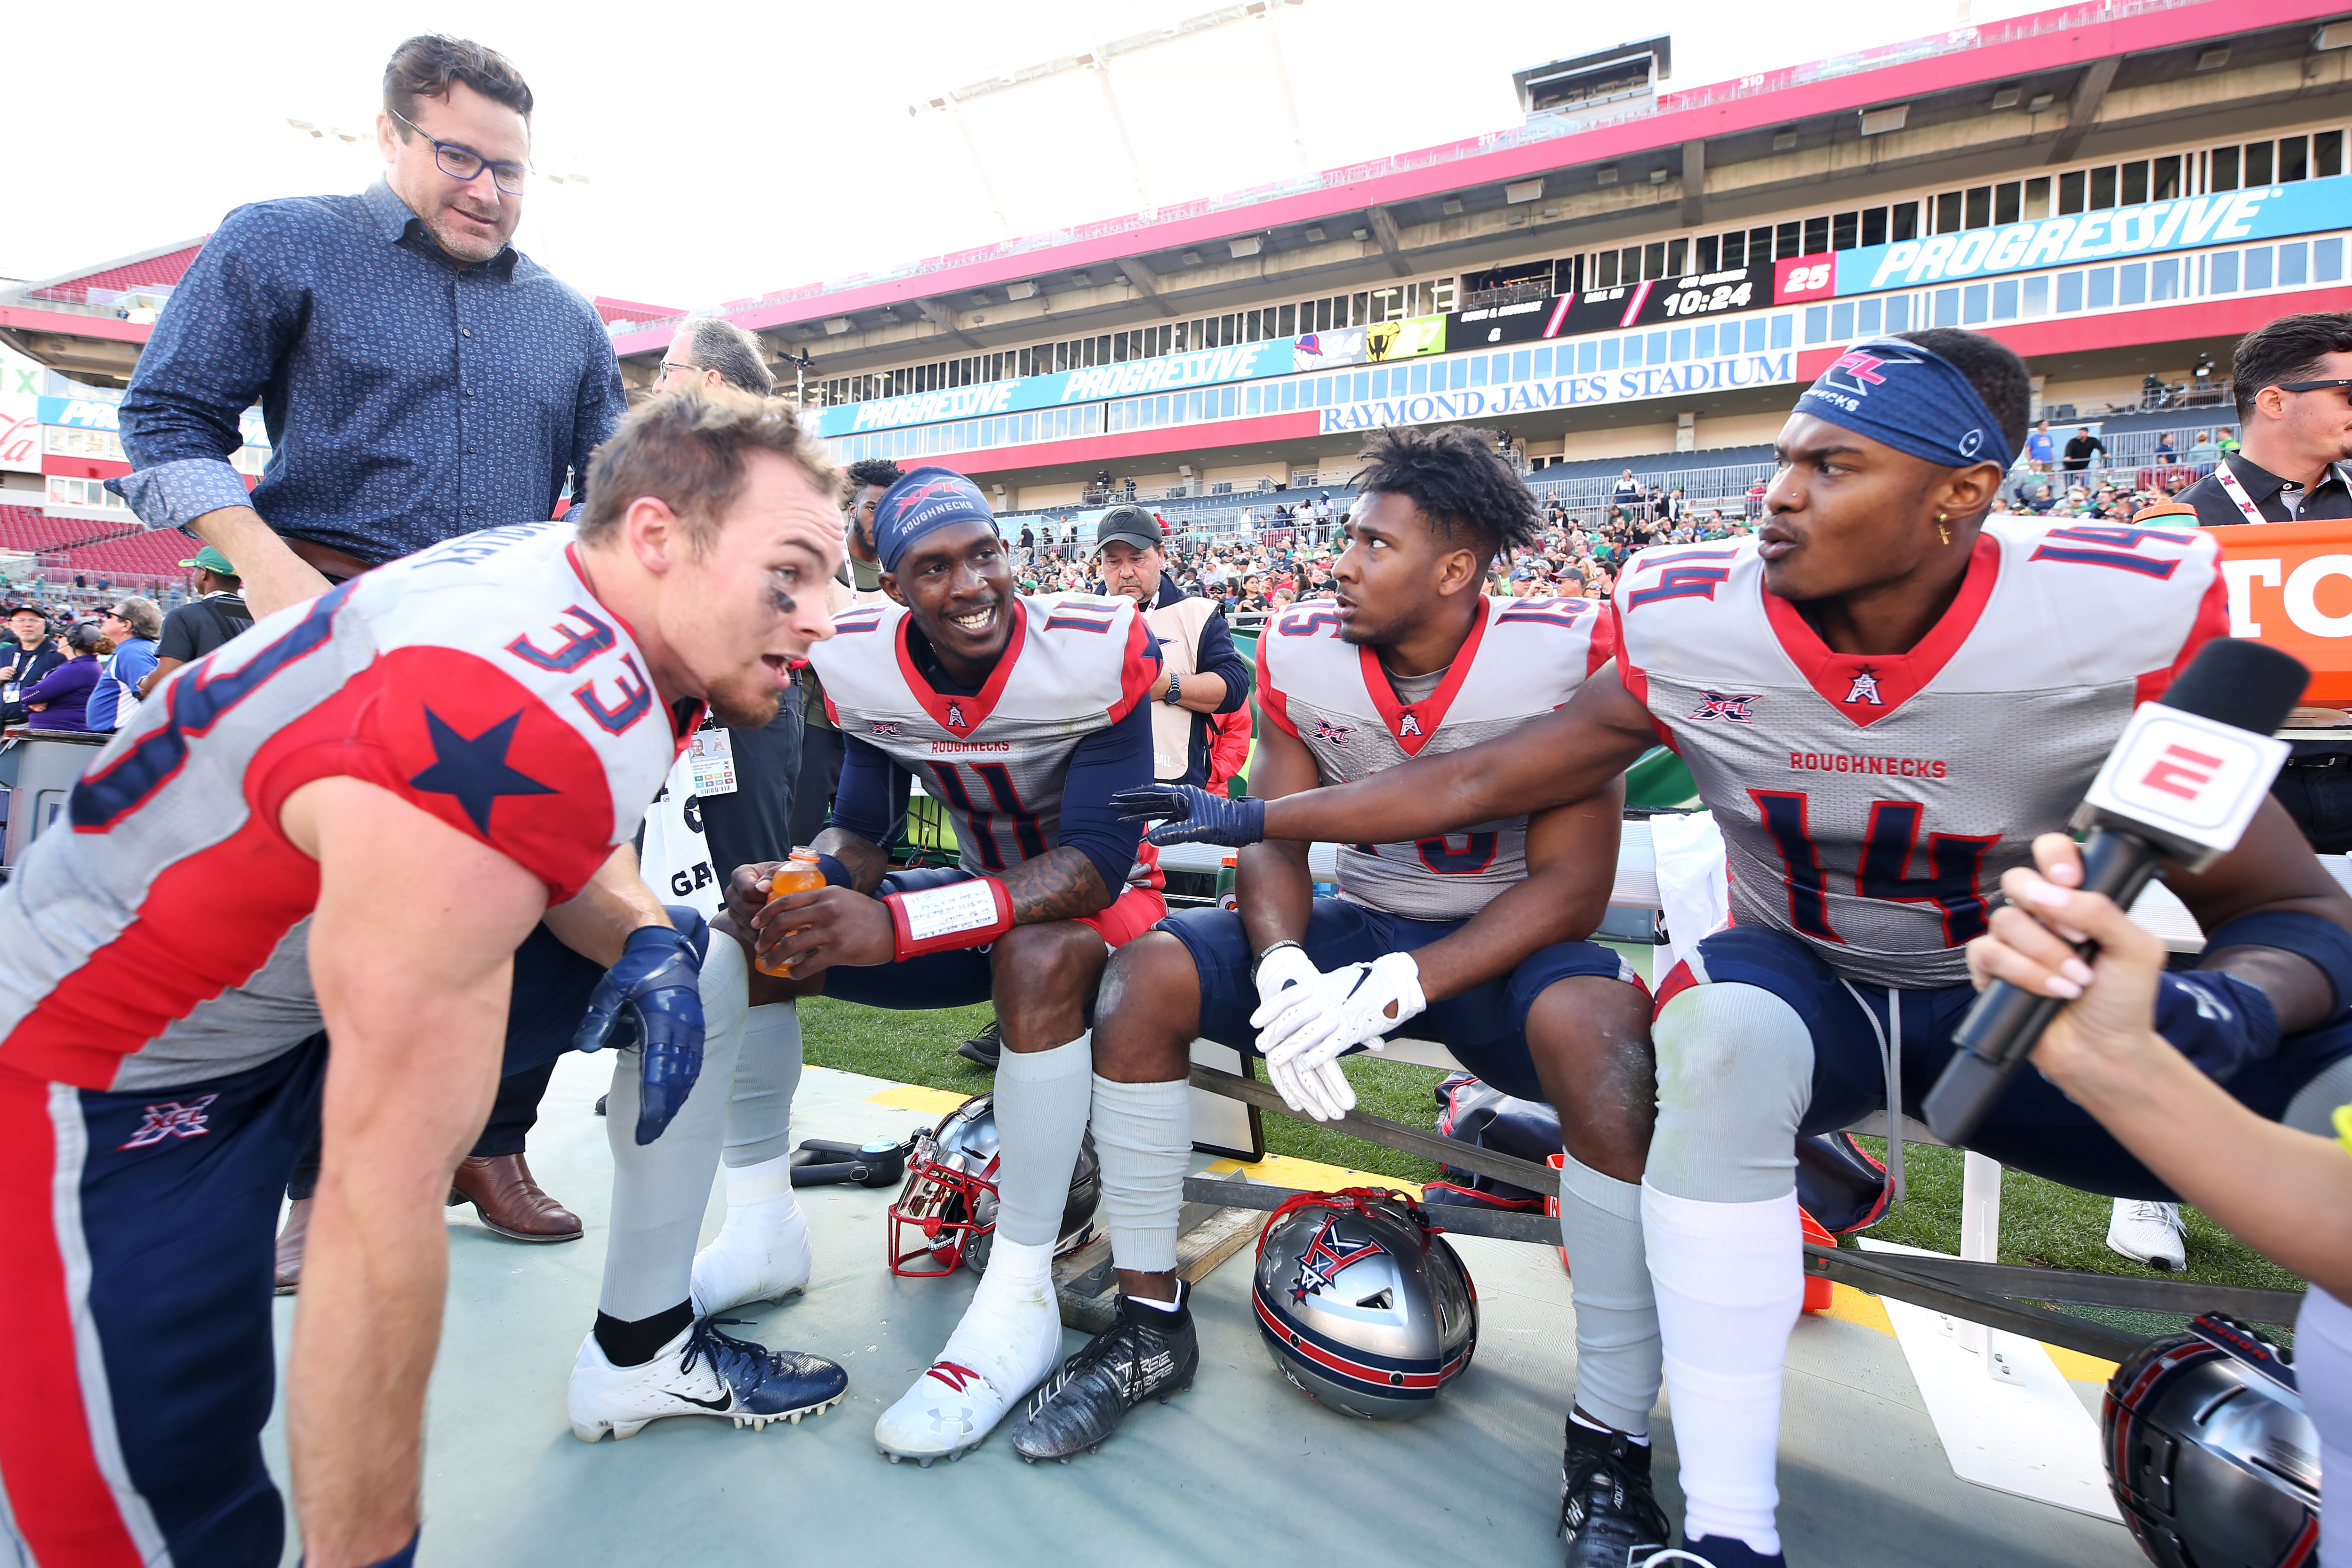 Nick Holley, P.J. Walker, Ryheem Malone, and Cam Phillips of the Houston Roughnecks are interviewed during the XFL game against the Tampa Bay Vipers at Raymond James Stadium on February 22, 2020 in Tampa, Florida.